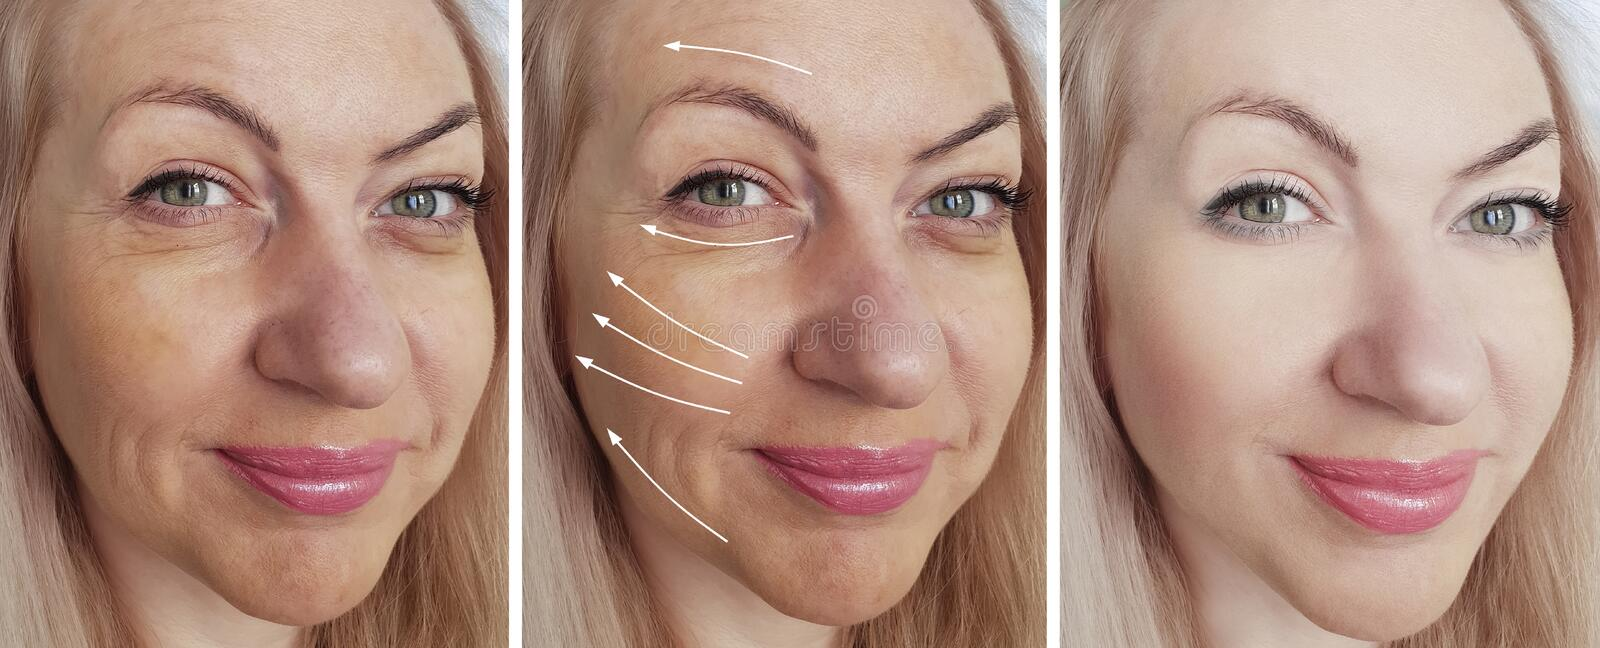 Woman wrinkles face rejuvenation difference before and after correction treatment collage royalty free stock photography